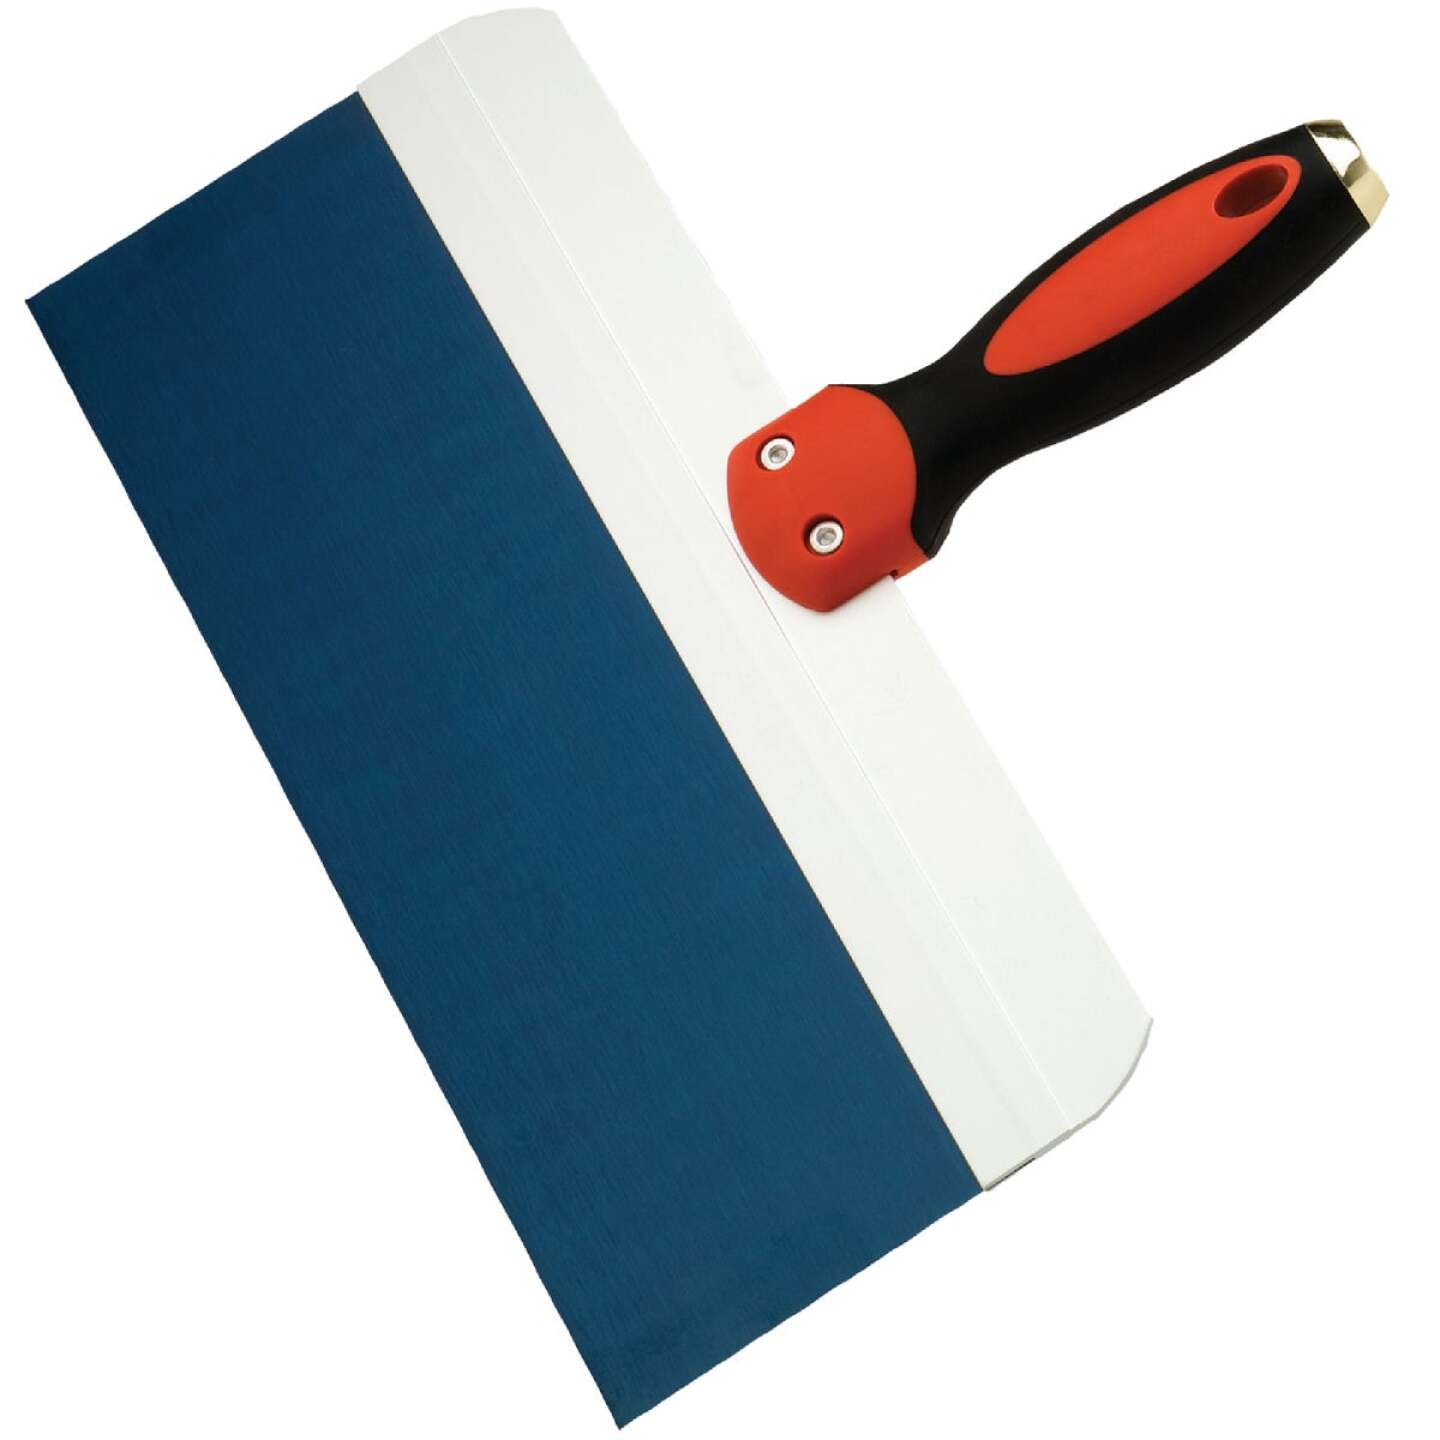 Do it Best 12 In. Ergo Blue Steel Taping Knife Image 1